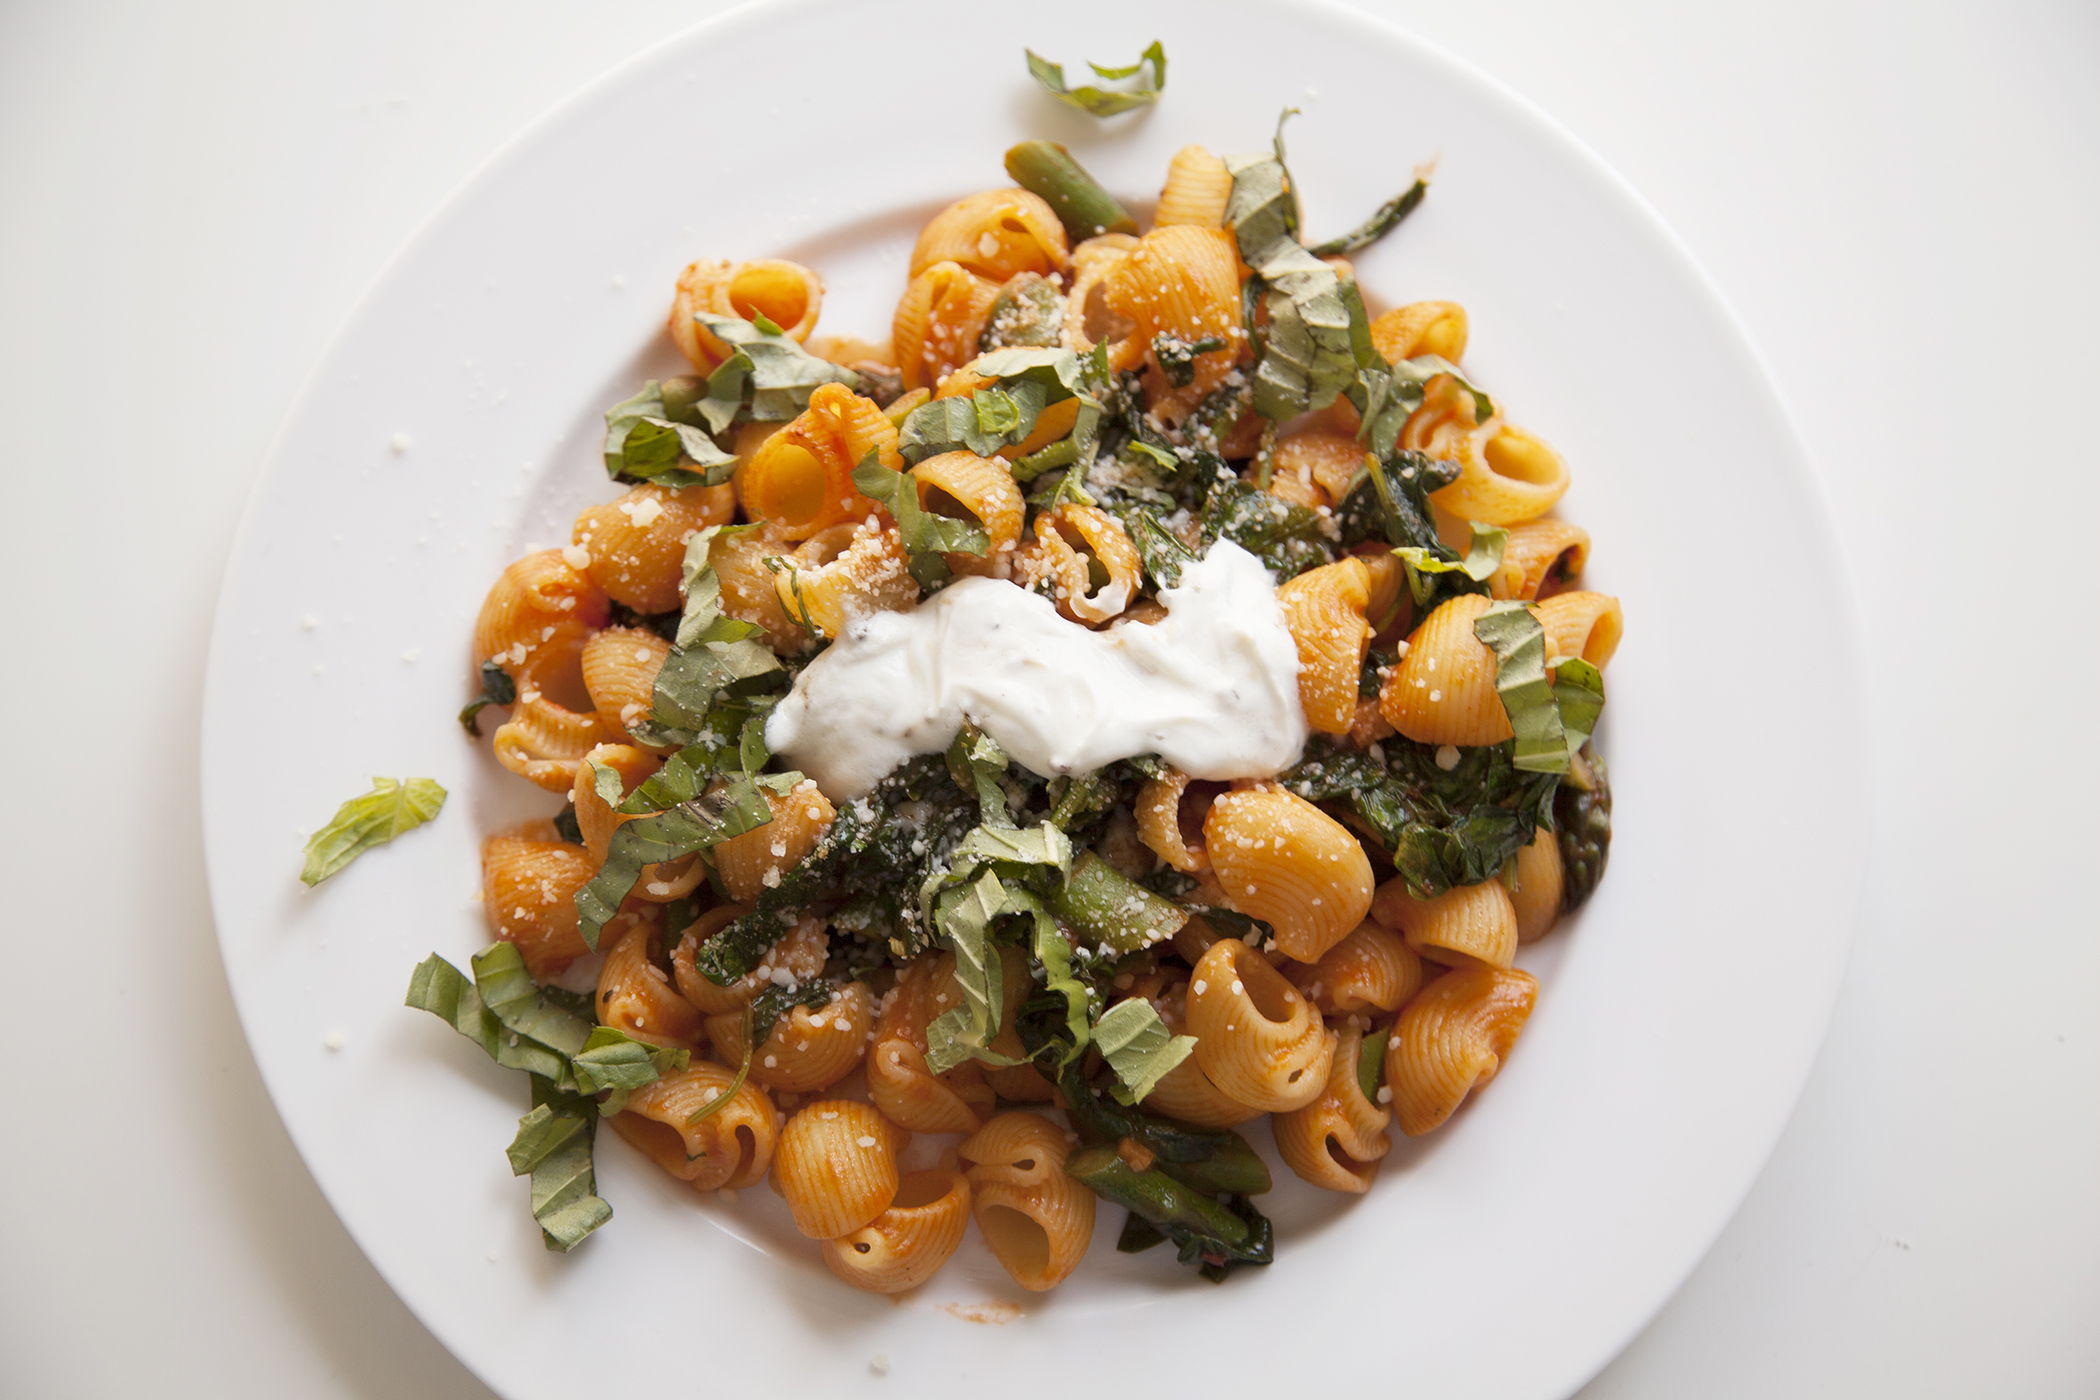 Blue Apron's Creamy Lumaca Rigata Pasta with asparagus and goat cheese.